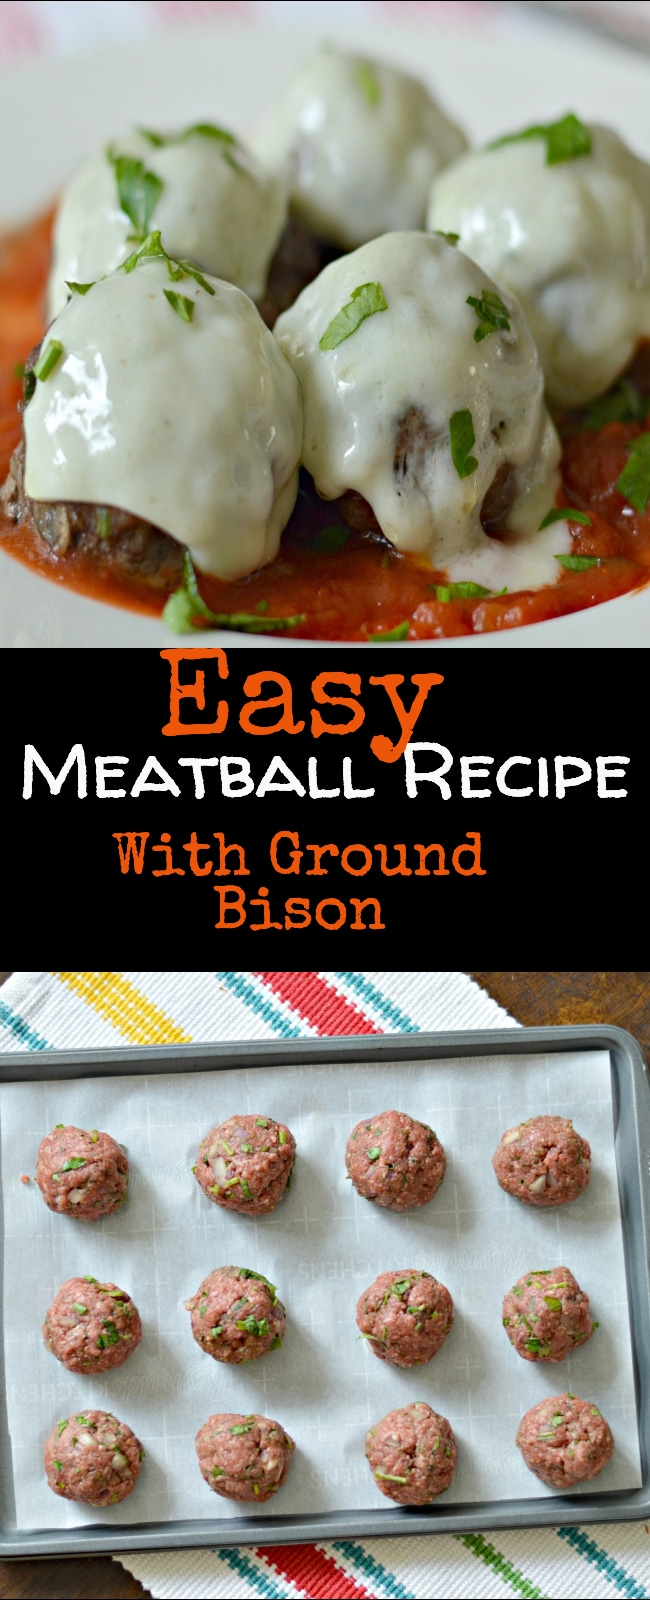 This easy meatball recipe is made with lean bison meat, and seasoned perfectly for a delicious, flavorful meal.